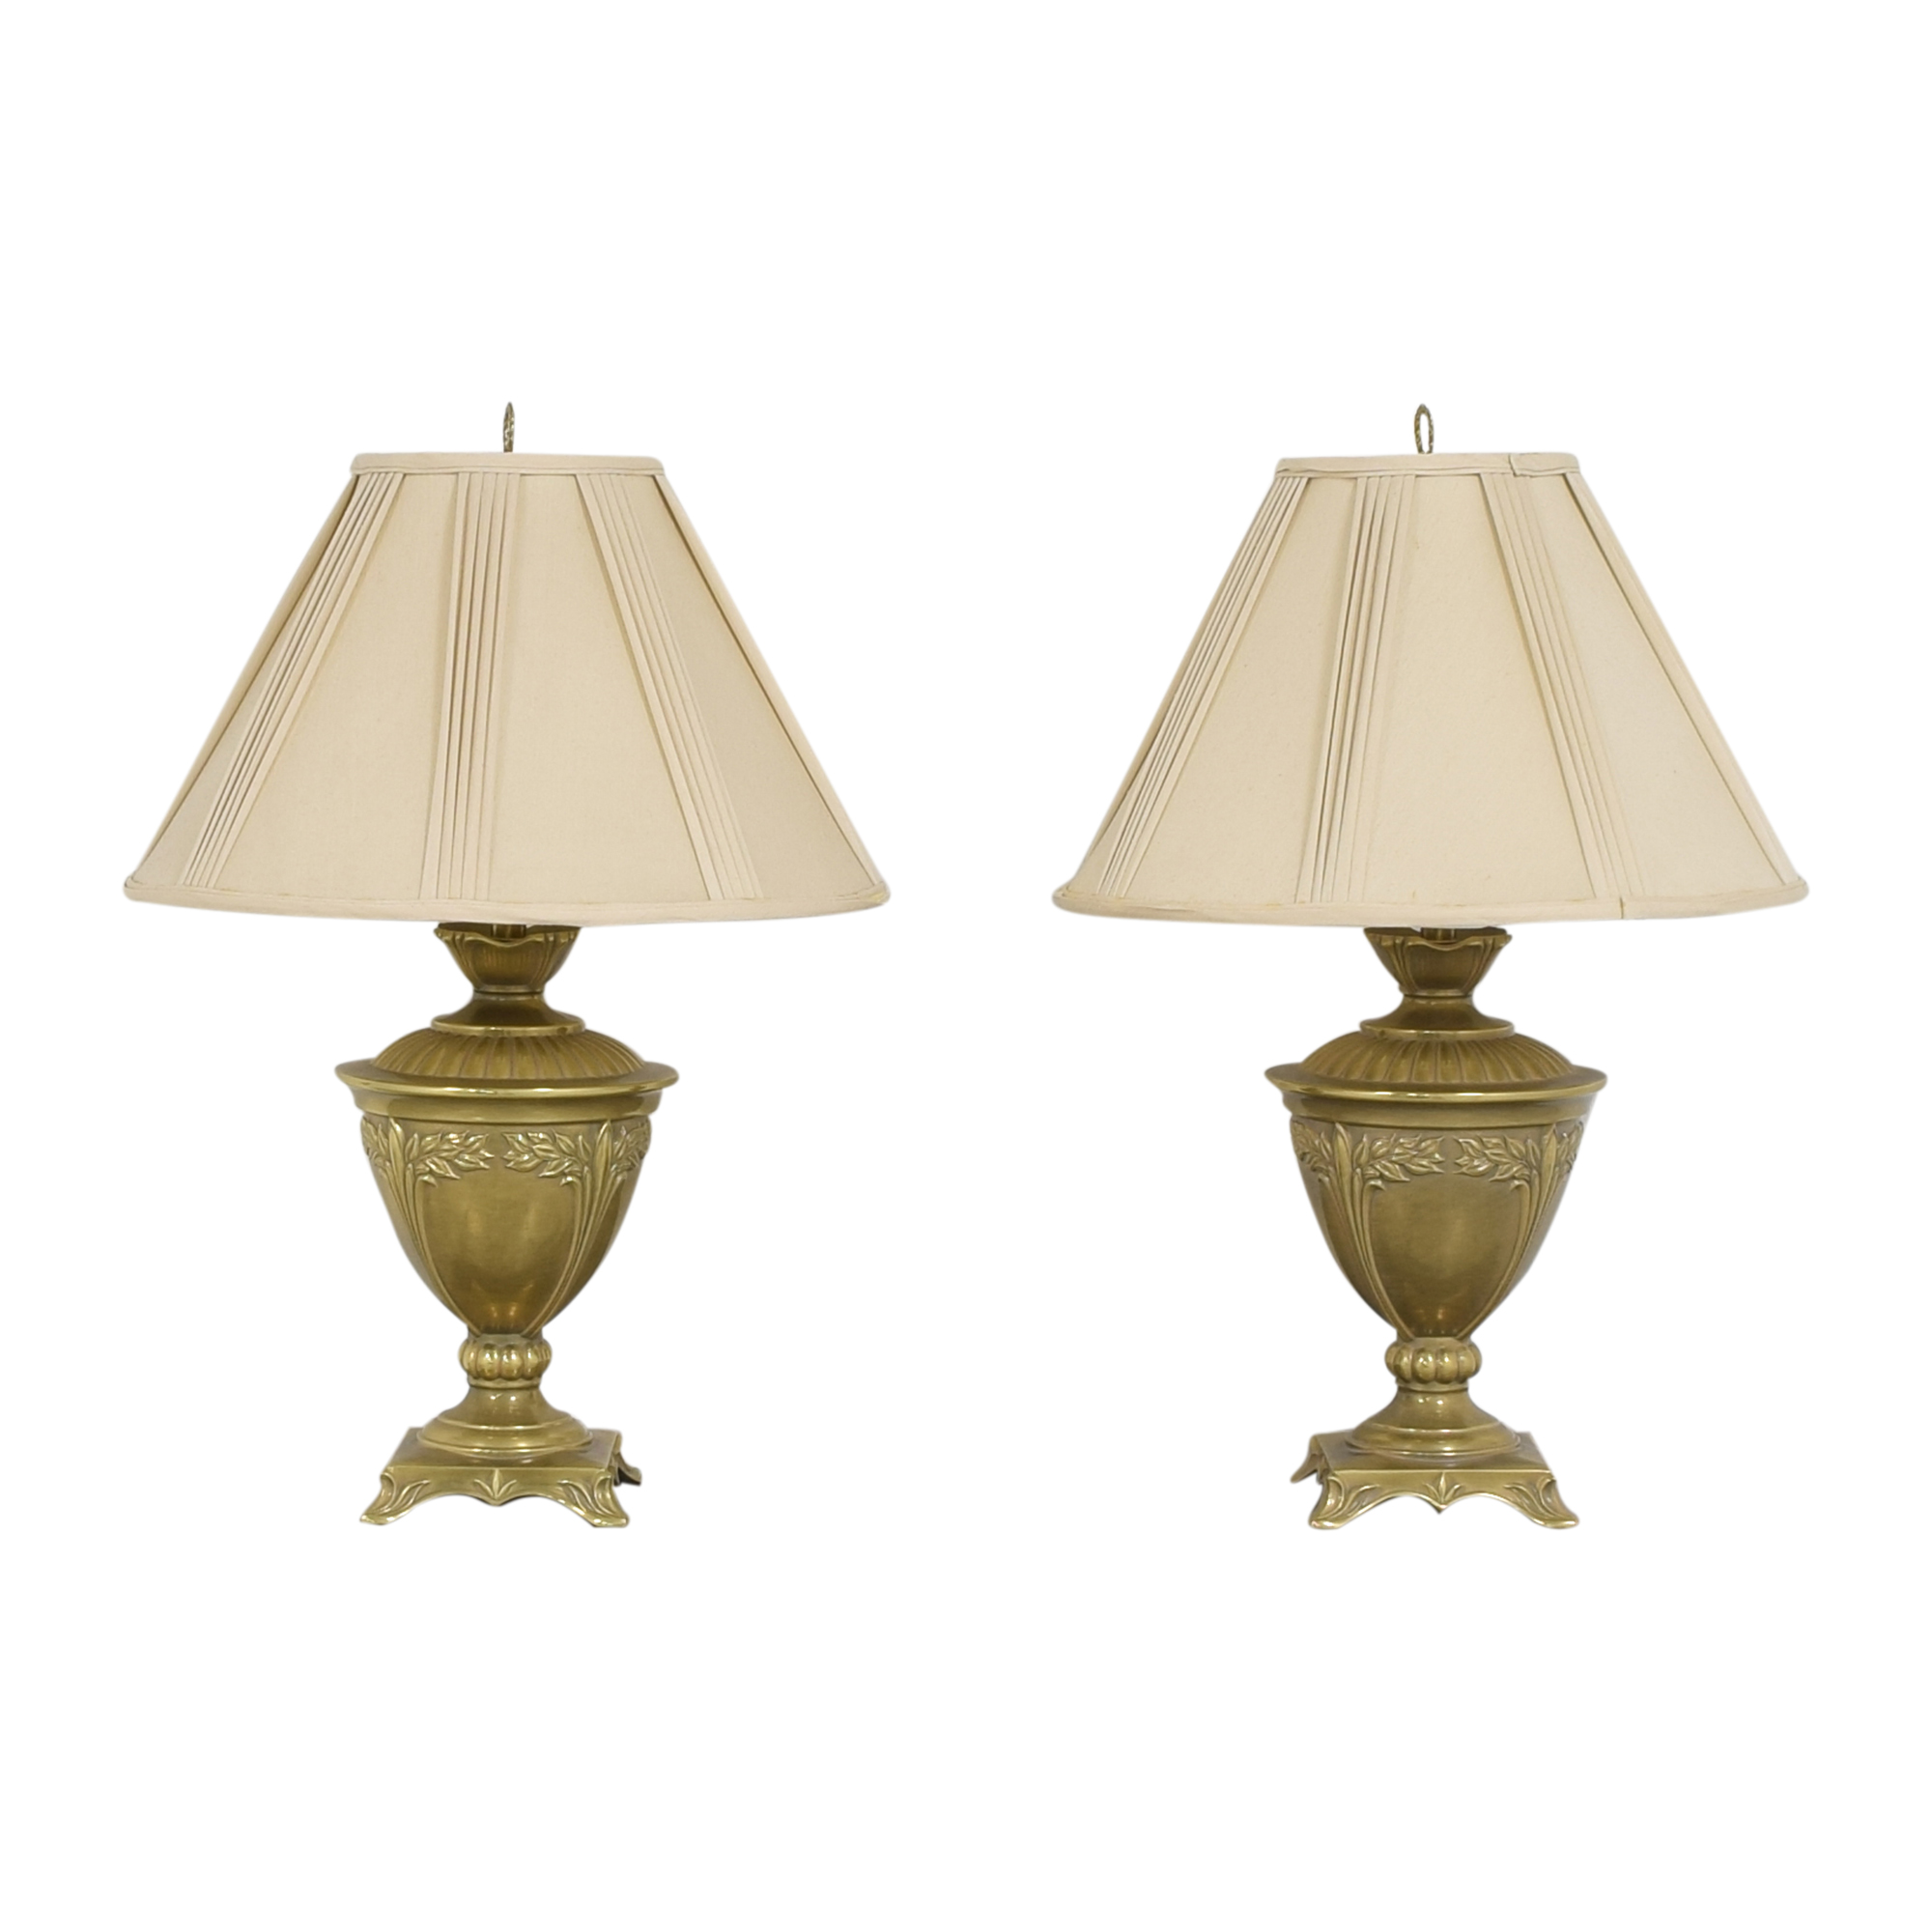 Ethan Allen Ethan Allen Urn Table Lamps gold and off white